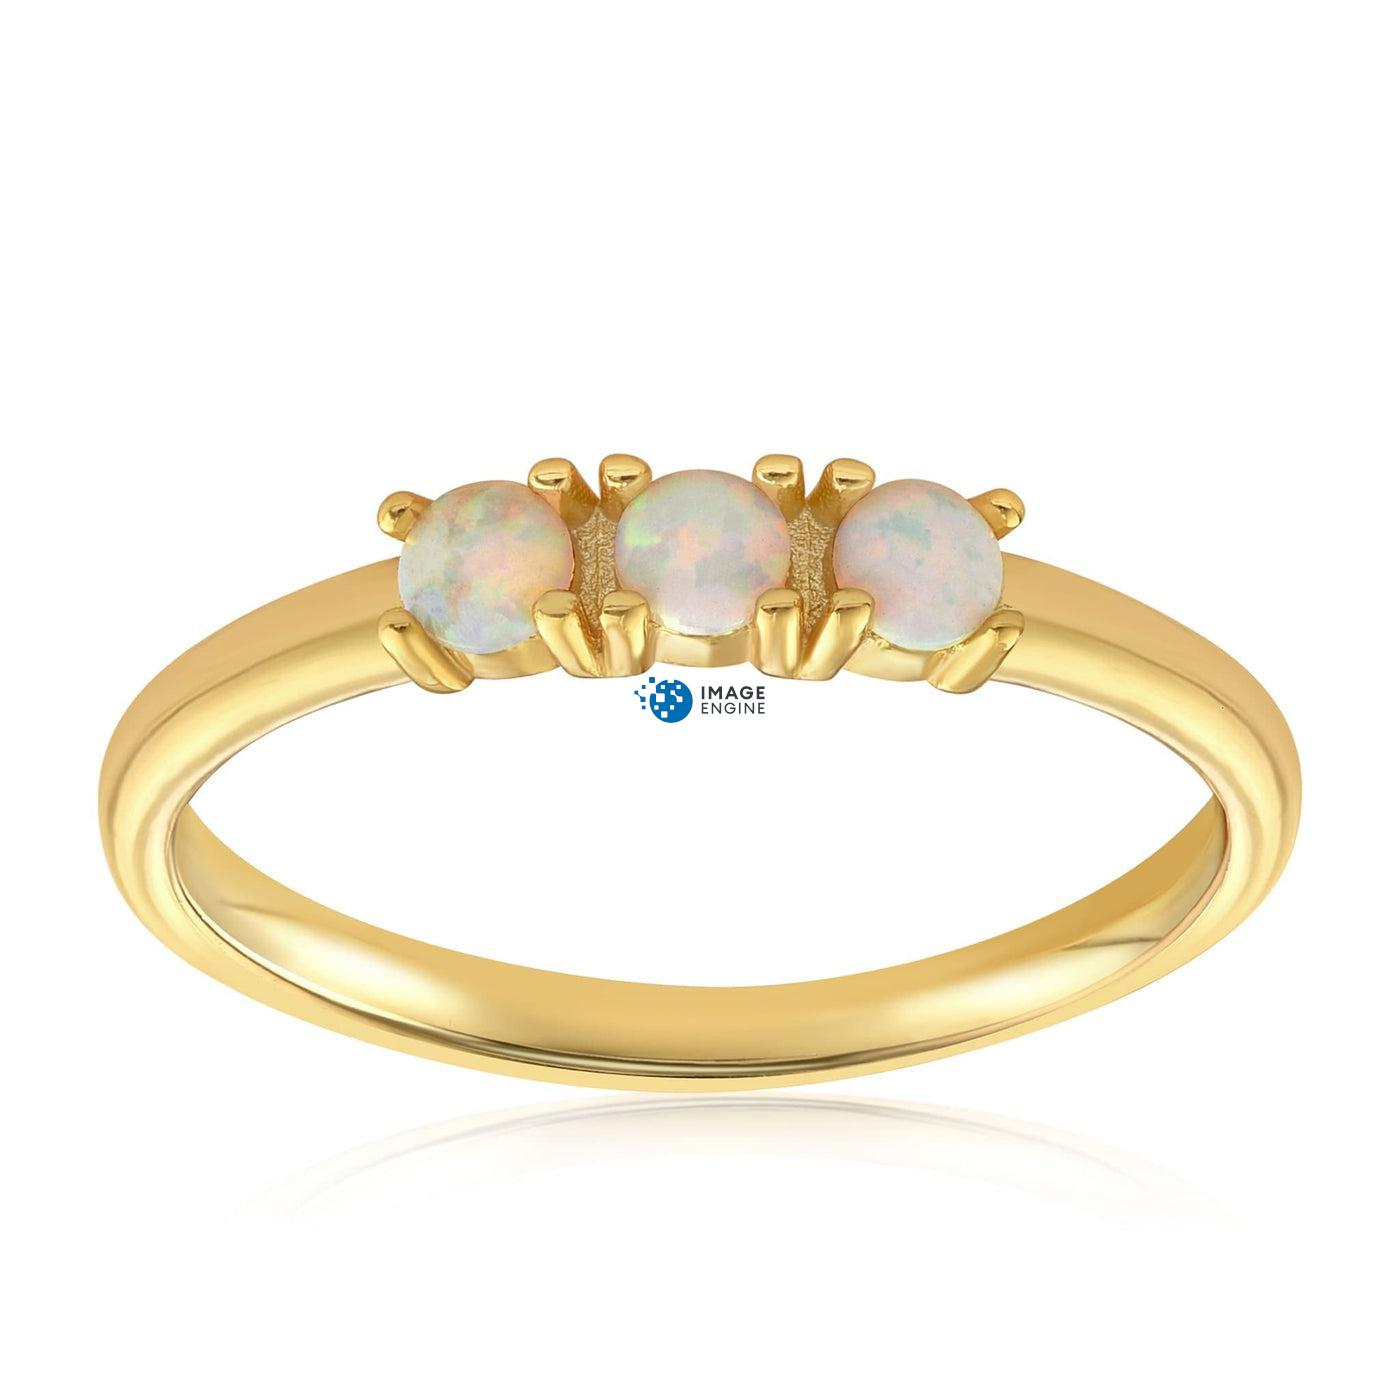 Simple Dots White Fire Opal Ring - Front View Facing Up - 18K Yellow Gold Vermeil